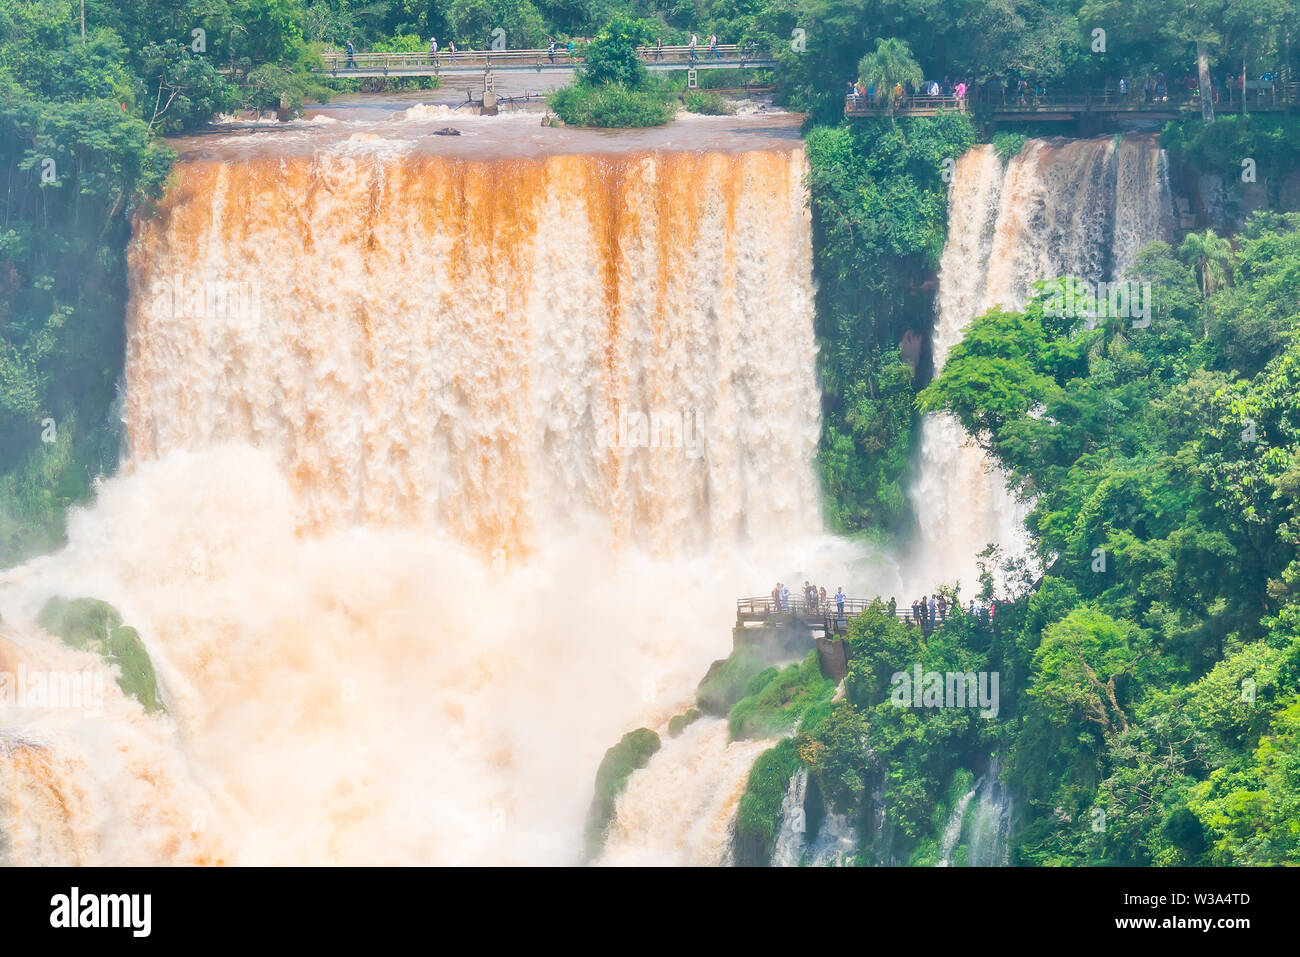 People walking on the catwalks at Iguazu Falls at the border of Brazil and Argentina - Stock Image